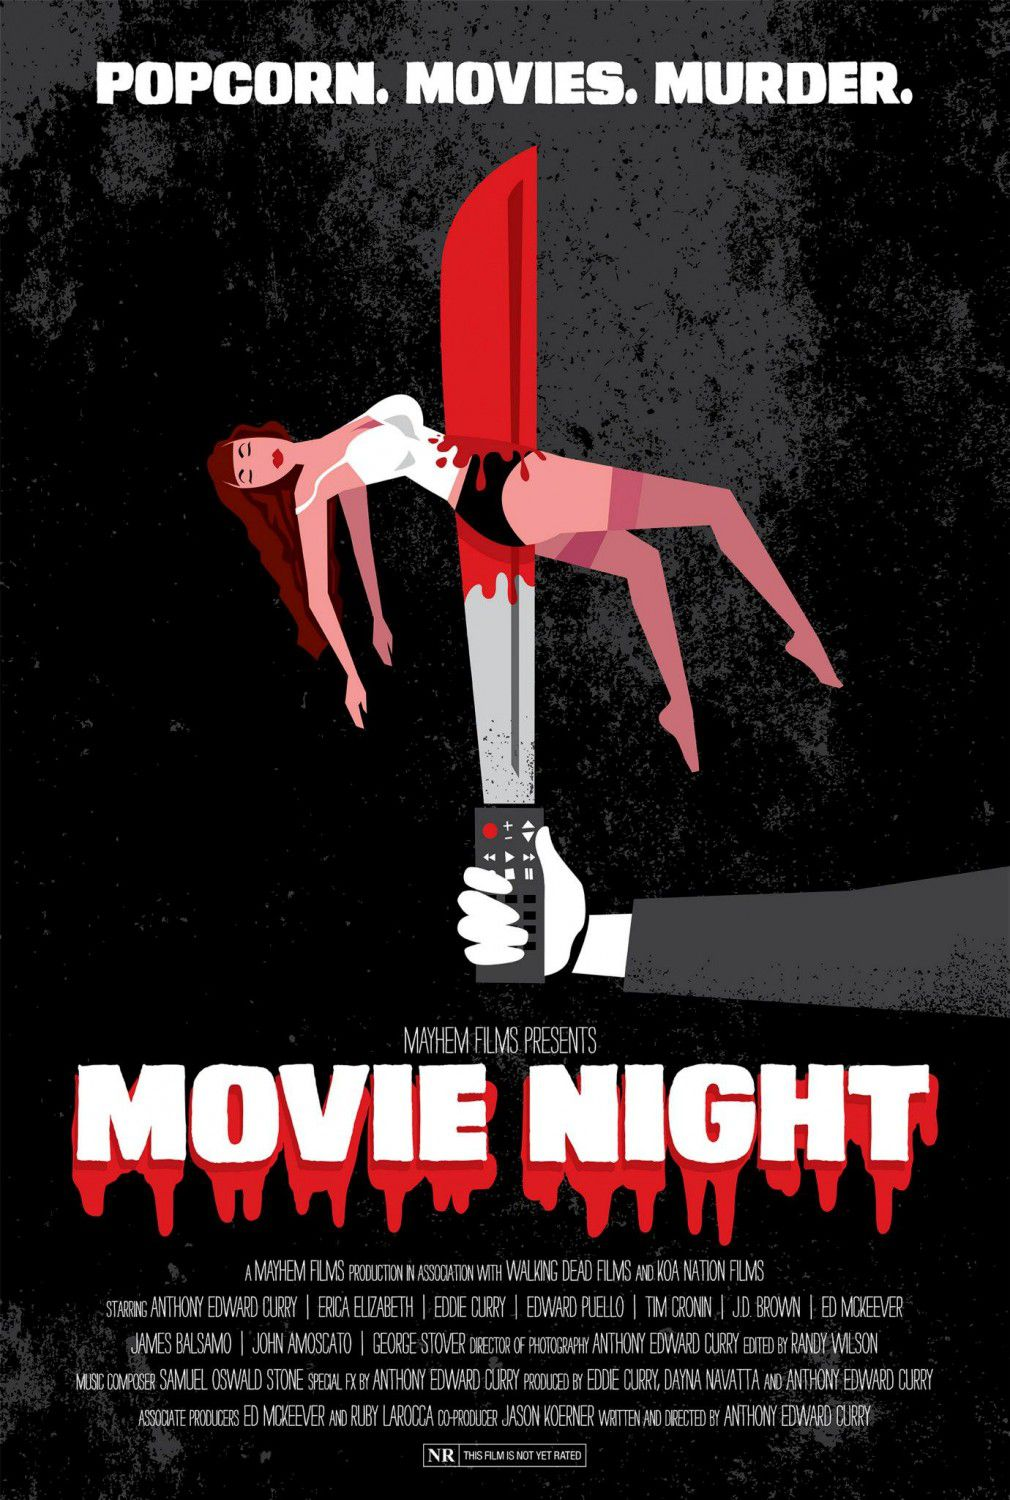 Movie Night - thriller film poster